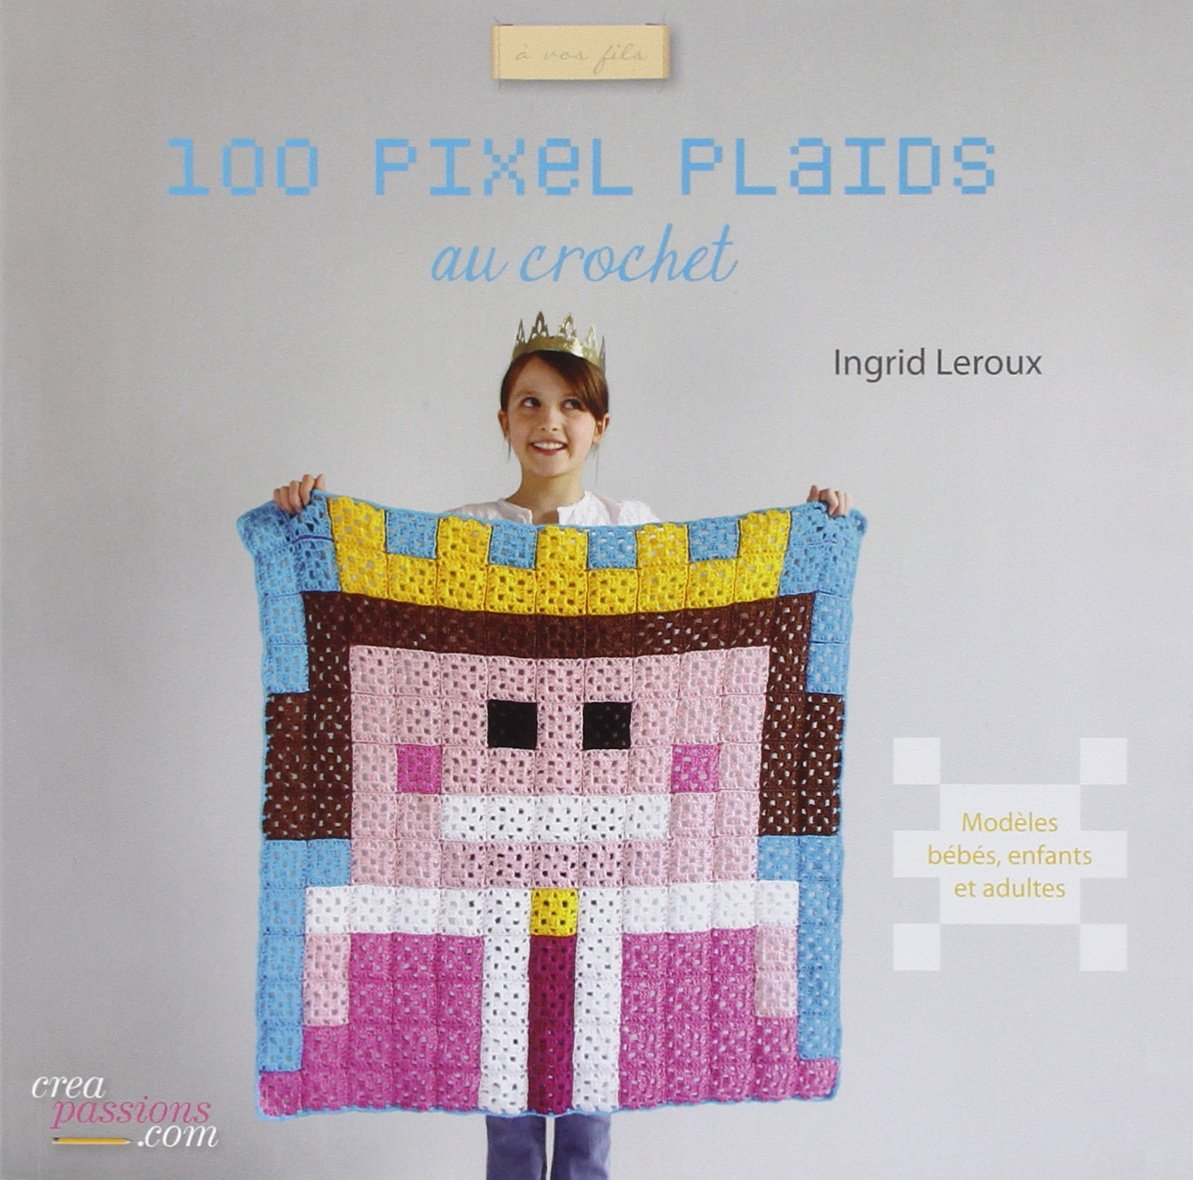 Amazon Fr 100 Pixels Plaids Au Crochet Ingrid Leroux